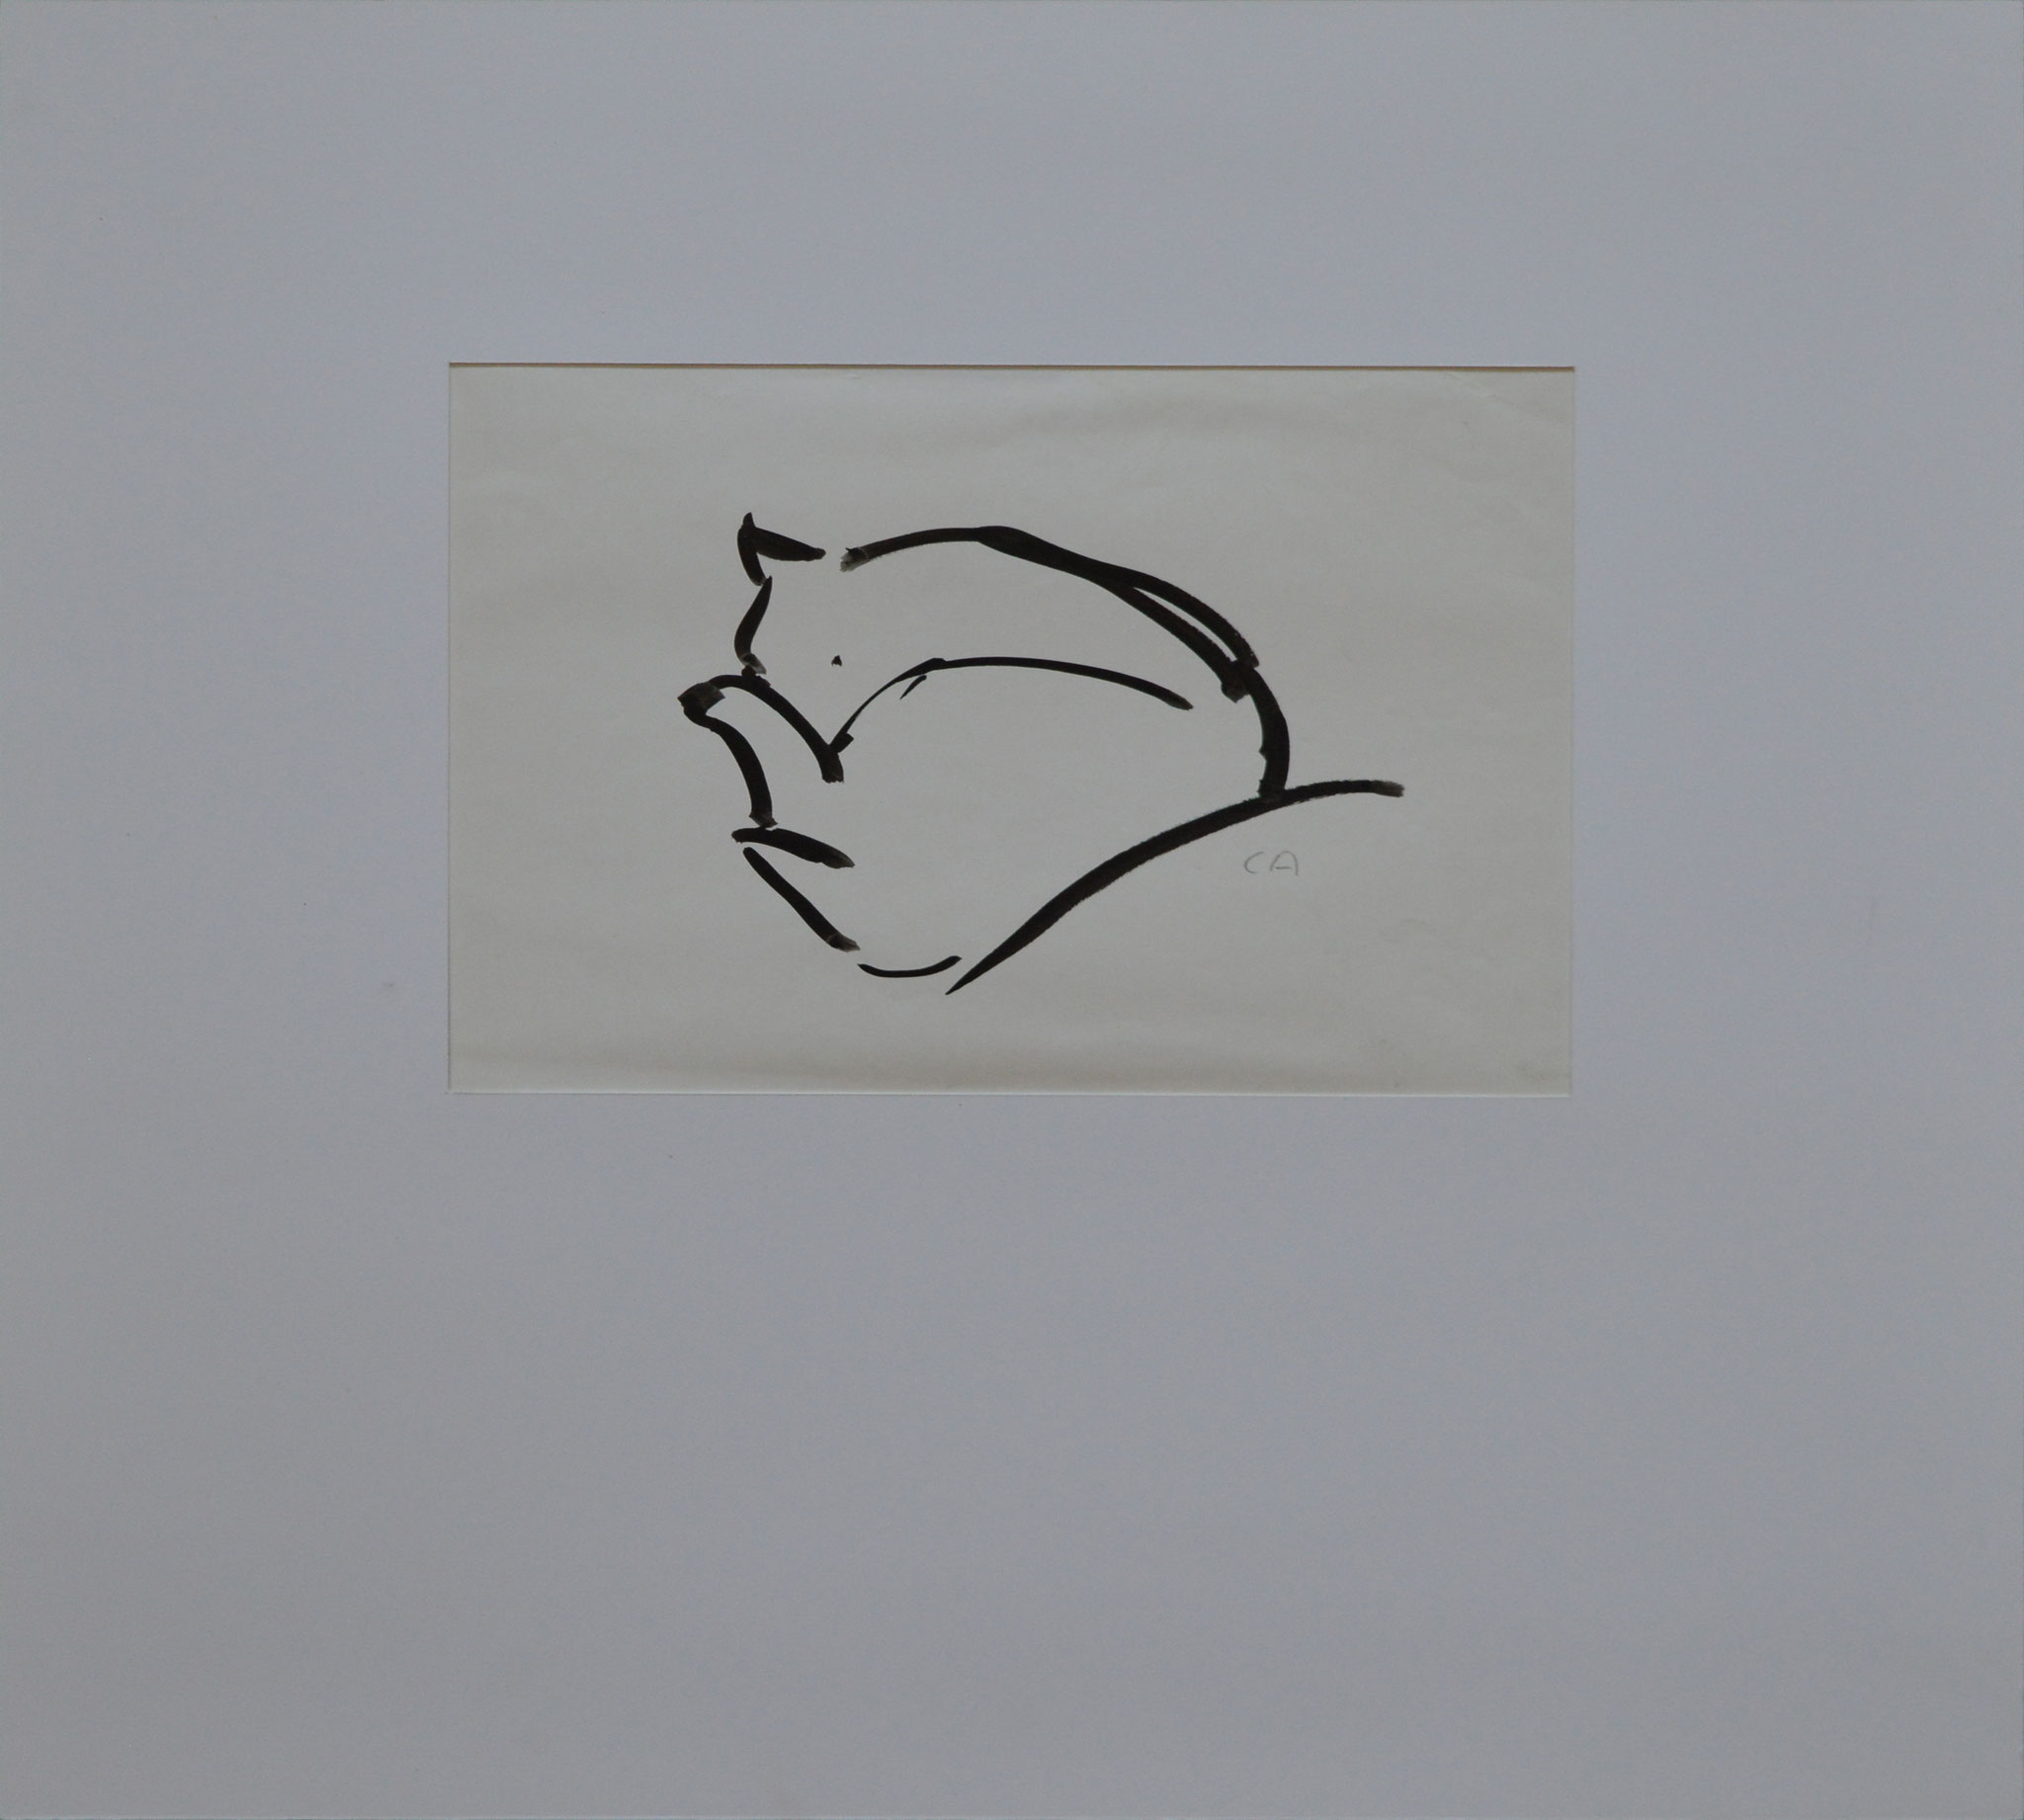 Cuno Amiet, Cat, pen and ink, undated